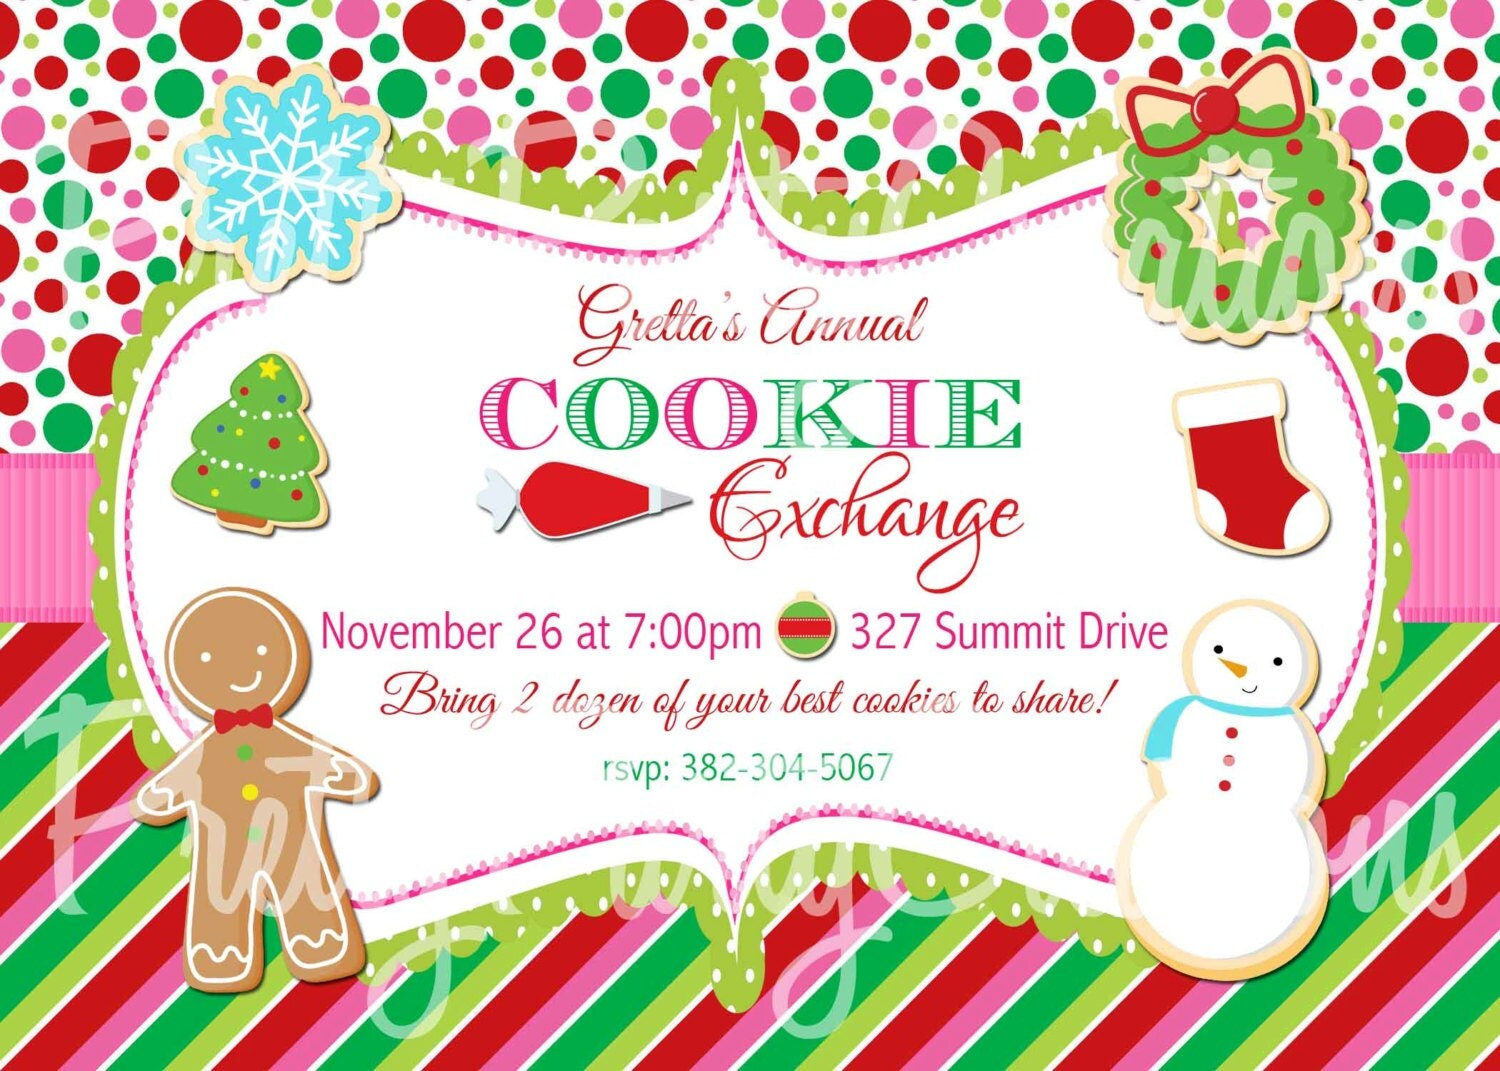 Printable Cookie Exchange Invitations is best invitation design